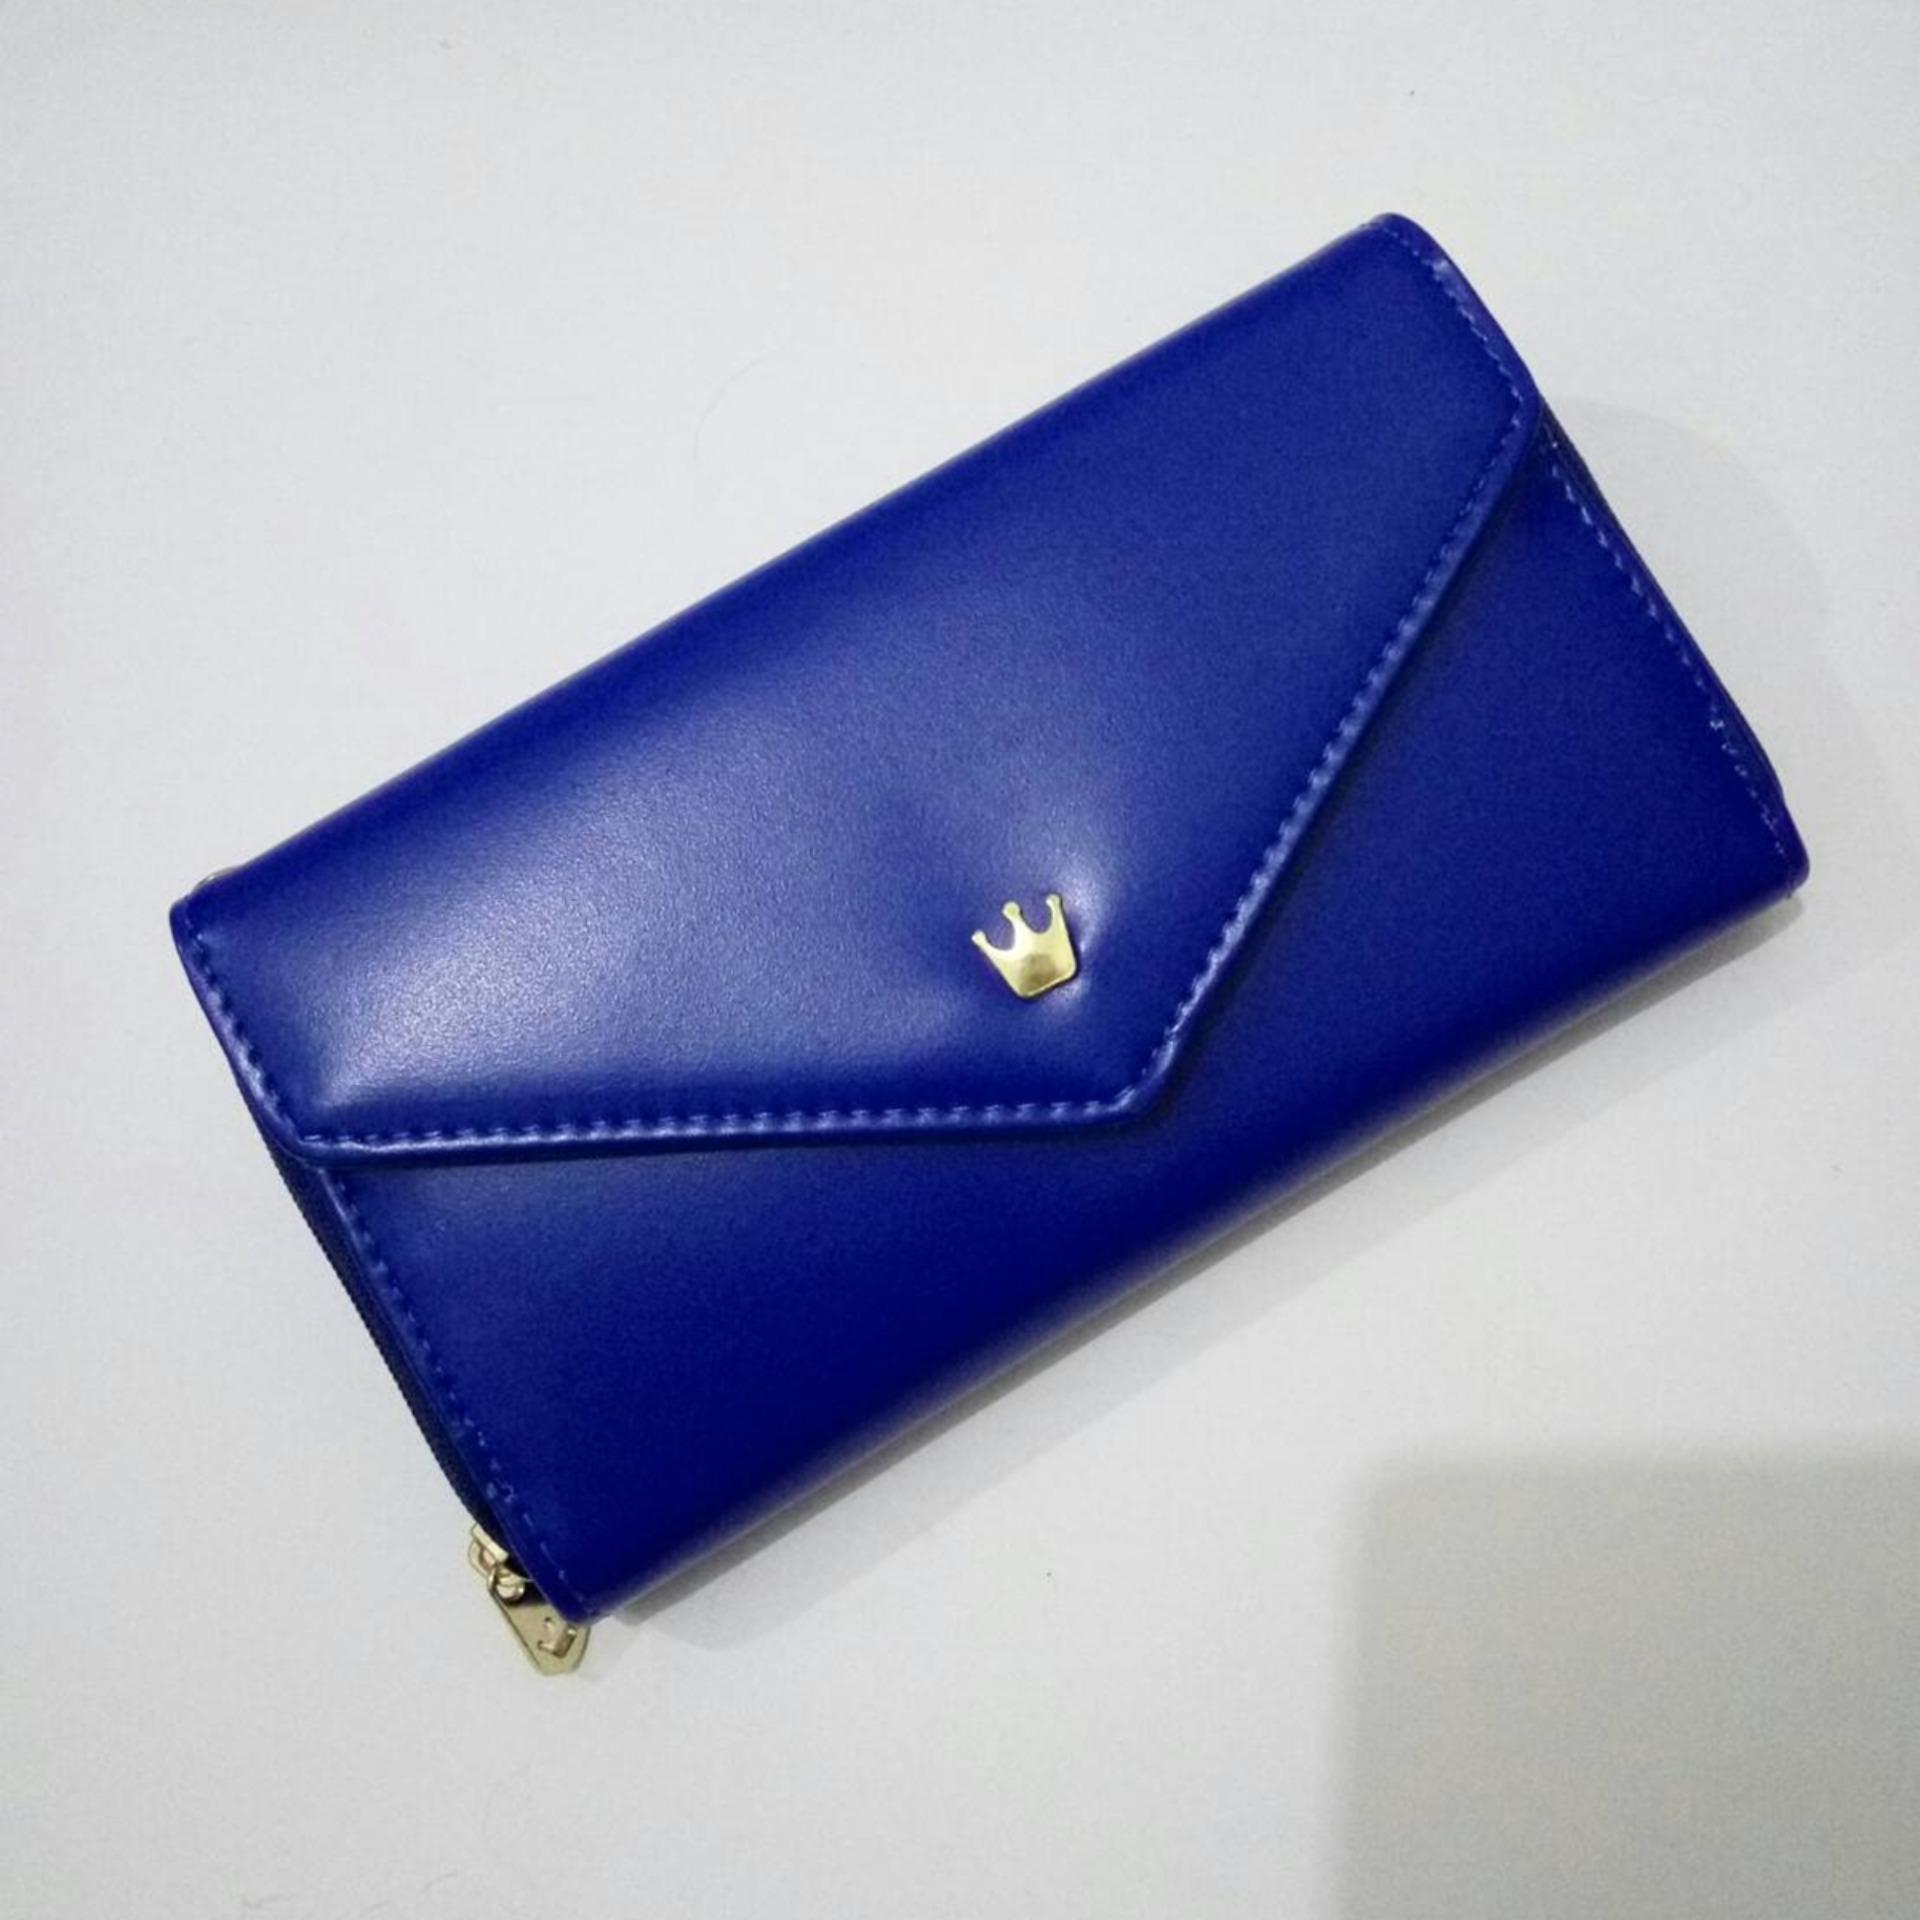 Jual Jims Honey Dompet Fashion Queenie Wallet Navy Baru